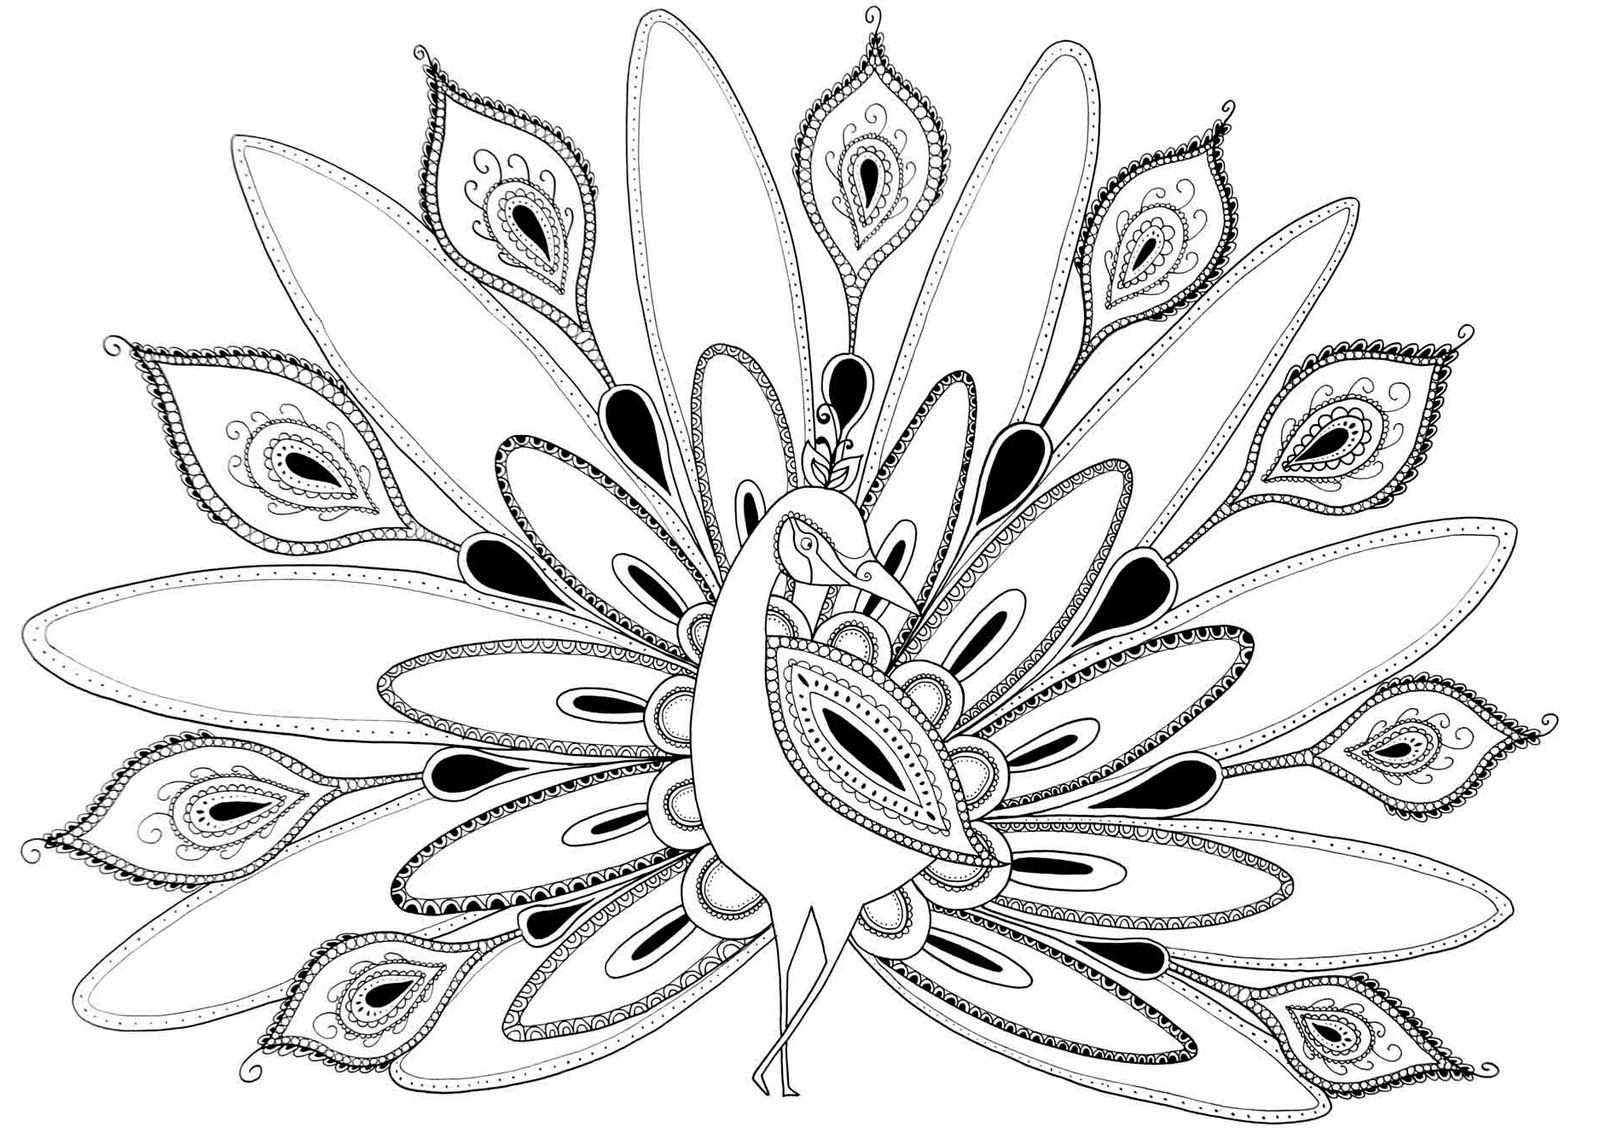 coloring outline image of peacock peacock coloring pages getcoloringpagescom image coloring outline peacock of